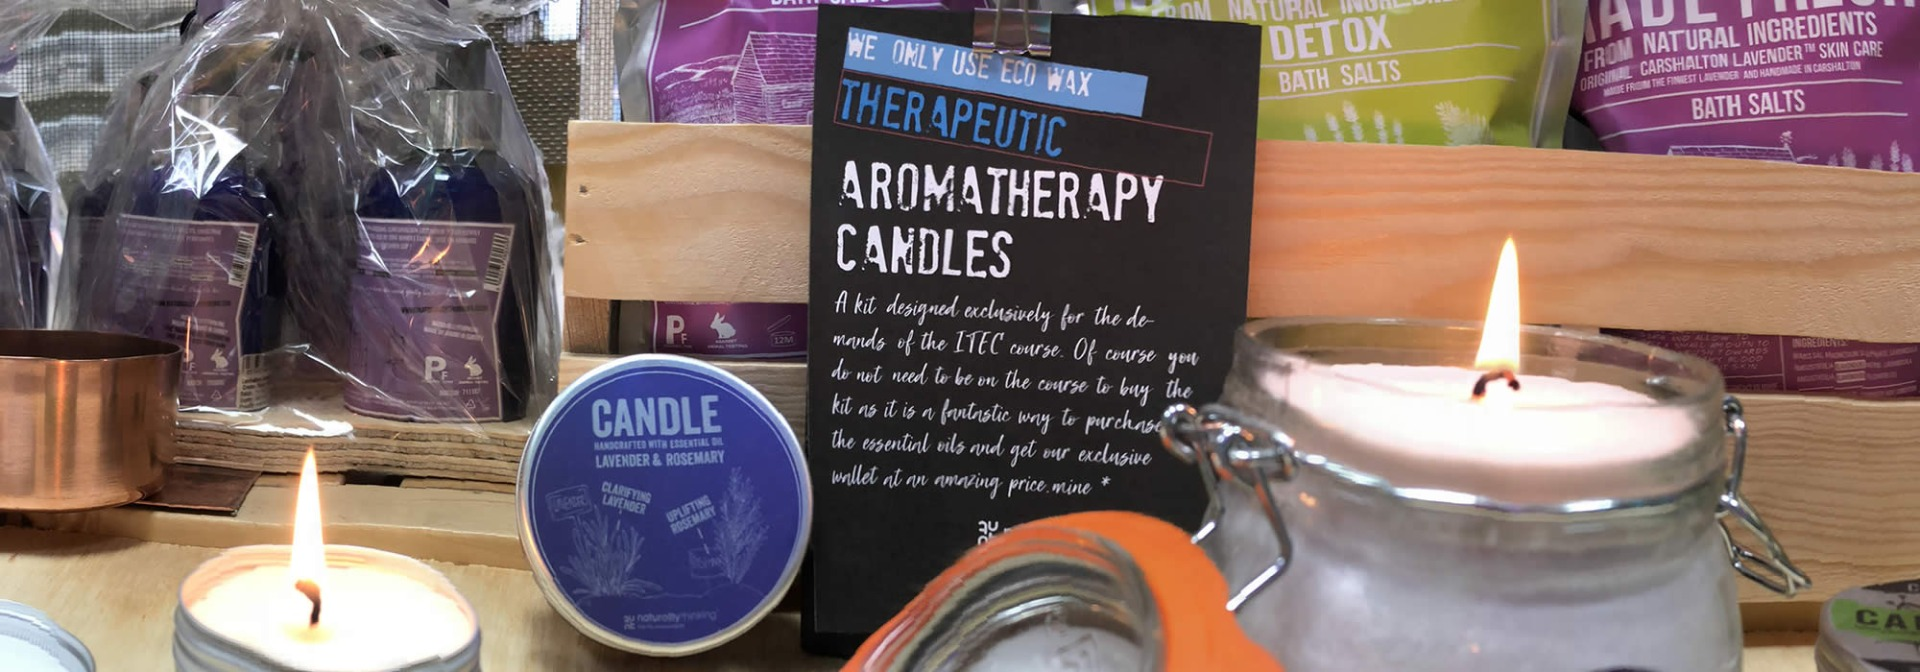 aromatherapy-candles-eco-soya-wax.jpg